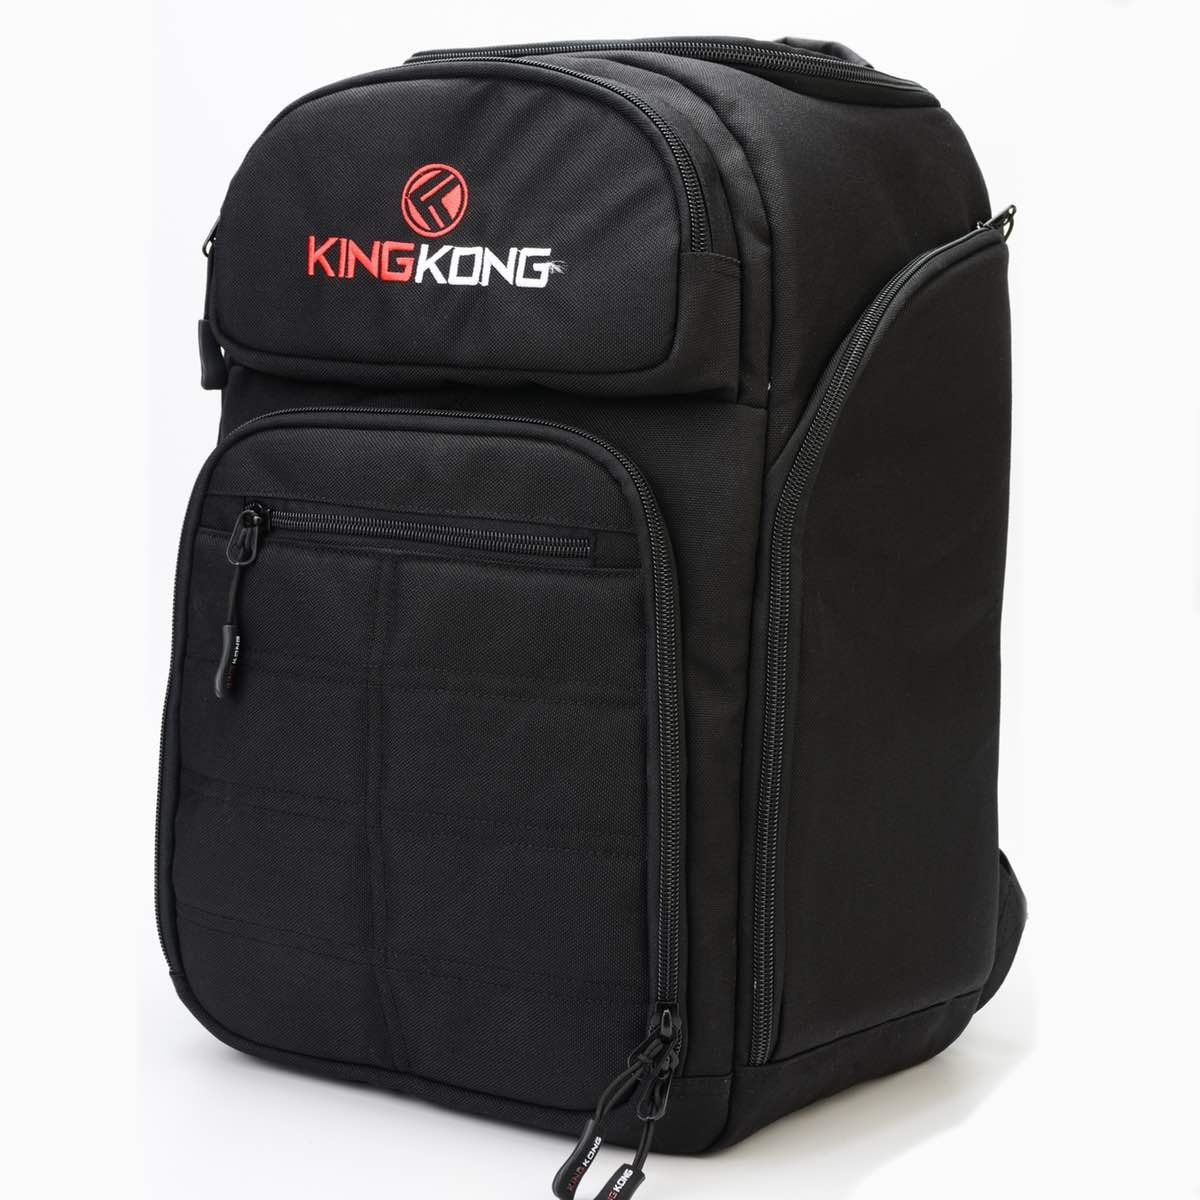 King Kong Fuel Meal Prep Backpack - Insulated Thermal Polyester Lunch Bag, Military Spec Nylon with Two Reusable Ice Packs - Black by King Kong (Image #6)